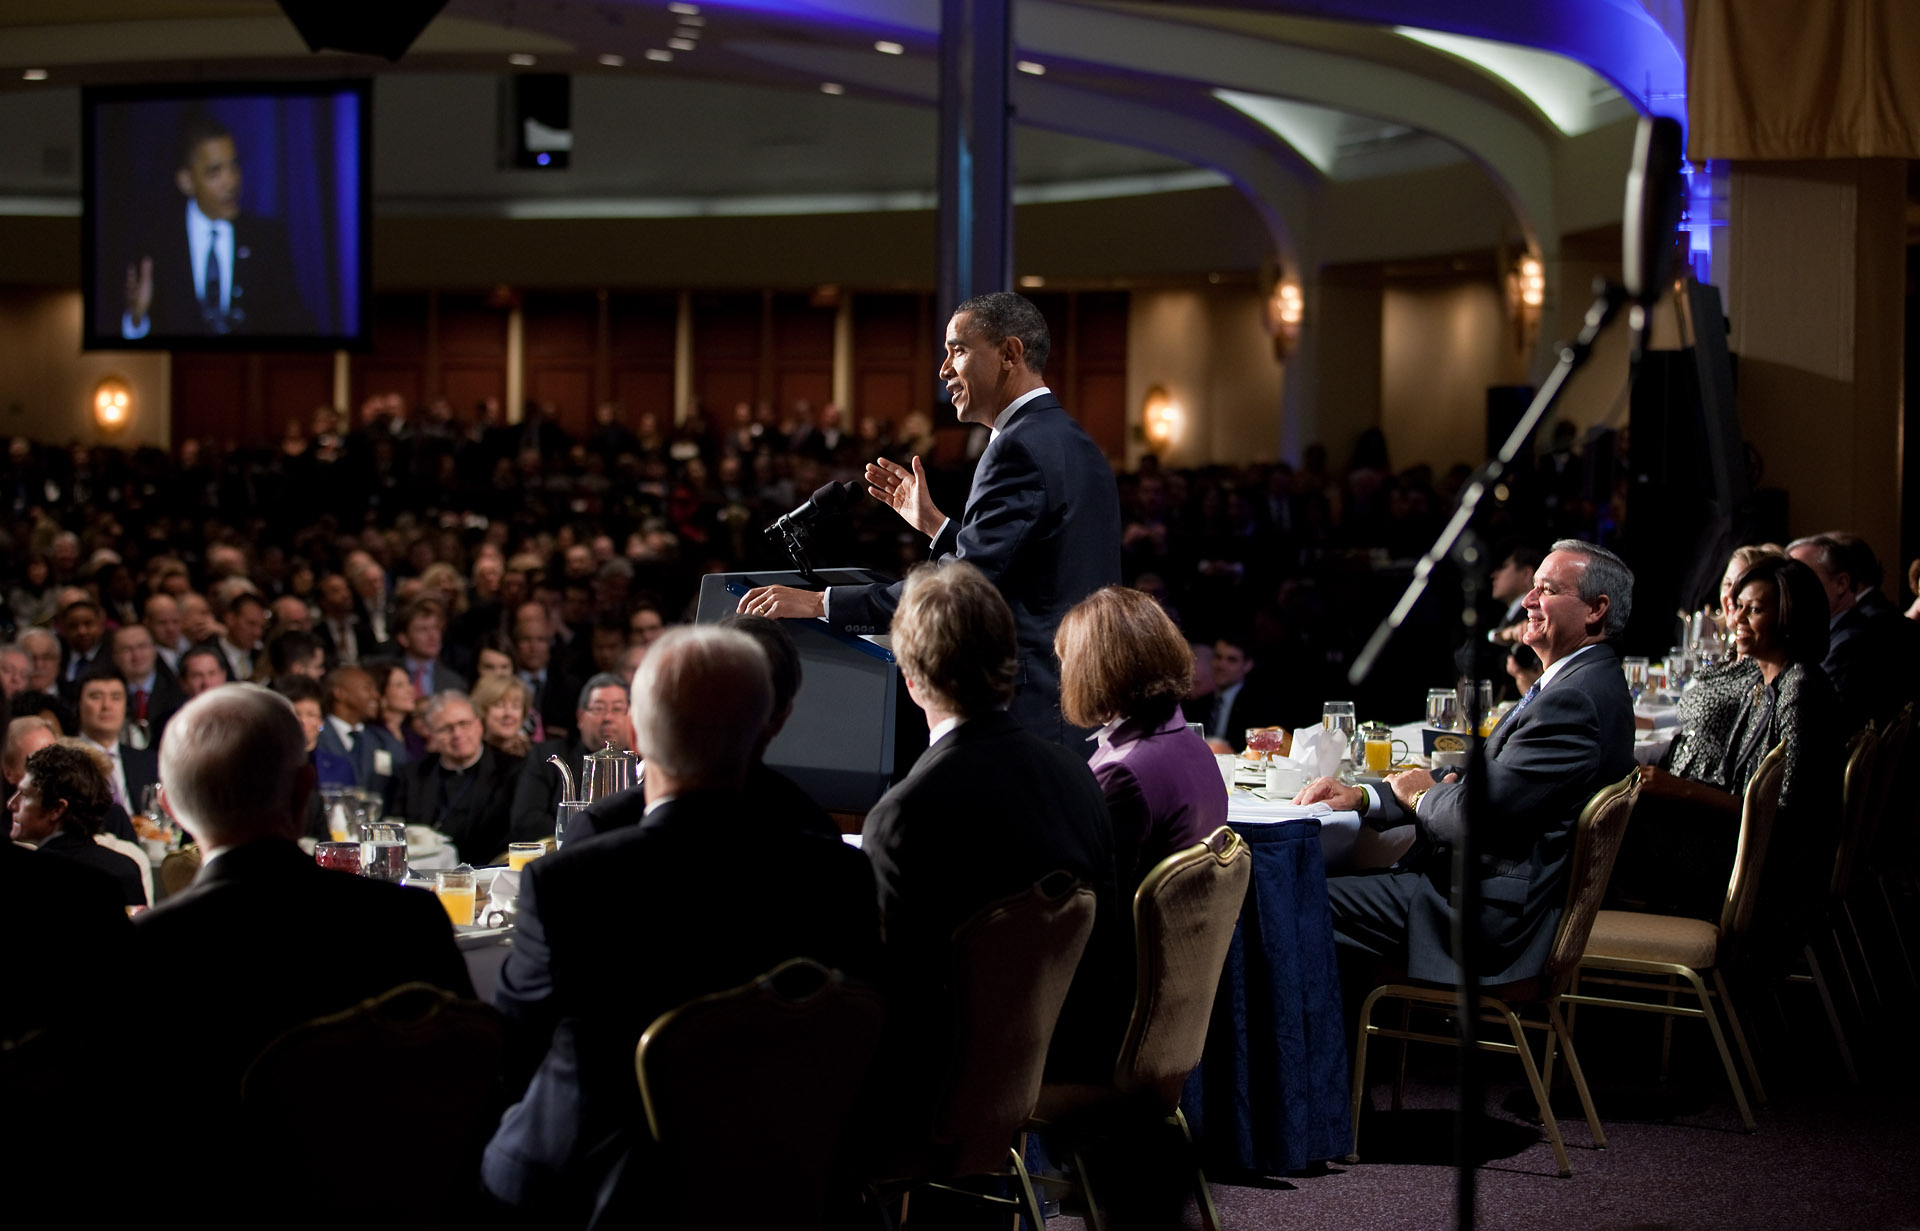 President Obama at the National Prayer Breakfast